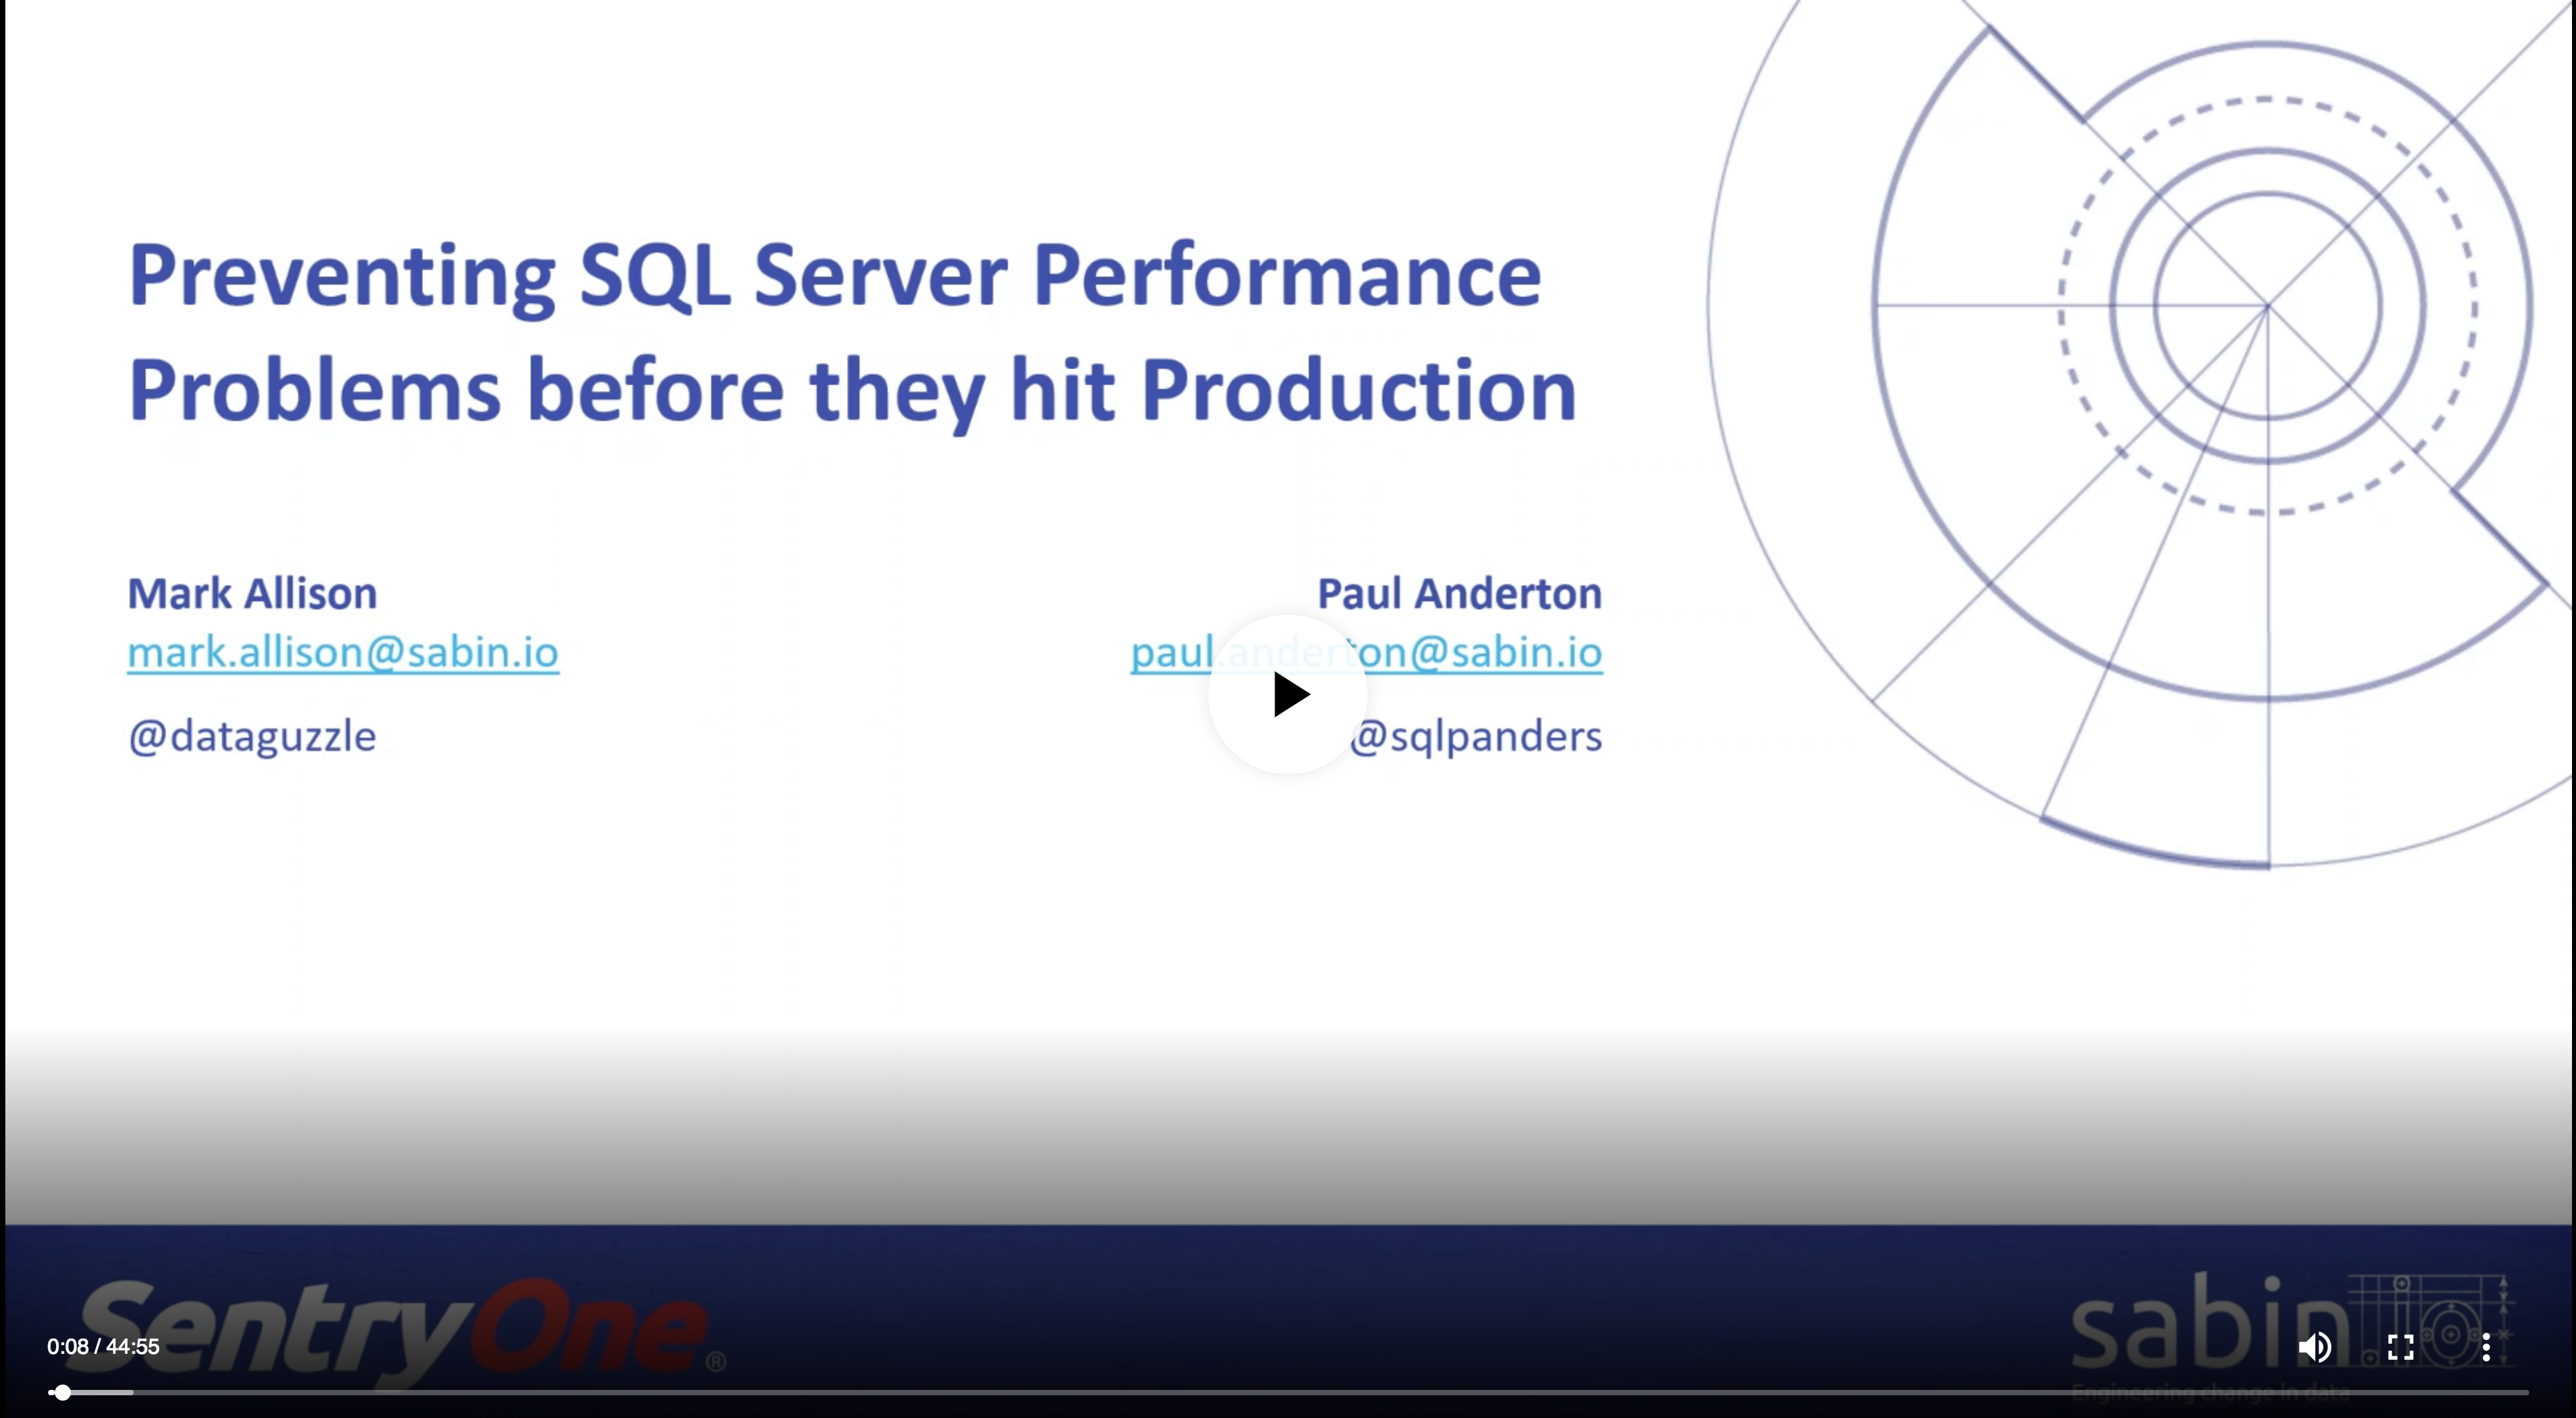 Preventing SQL Server Performance Problems (with SabinIO)